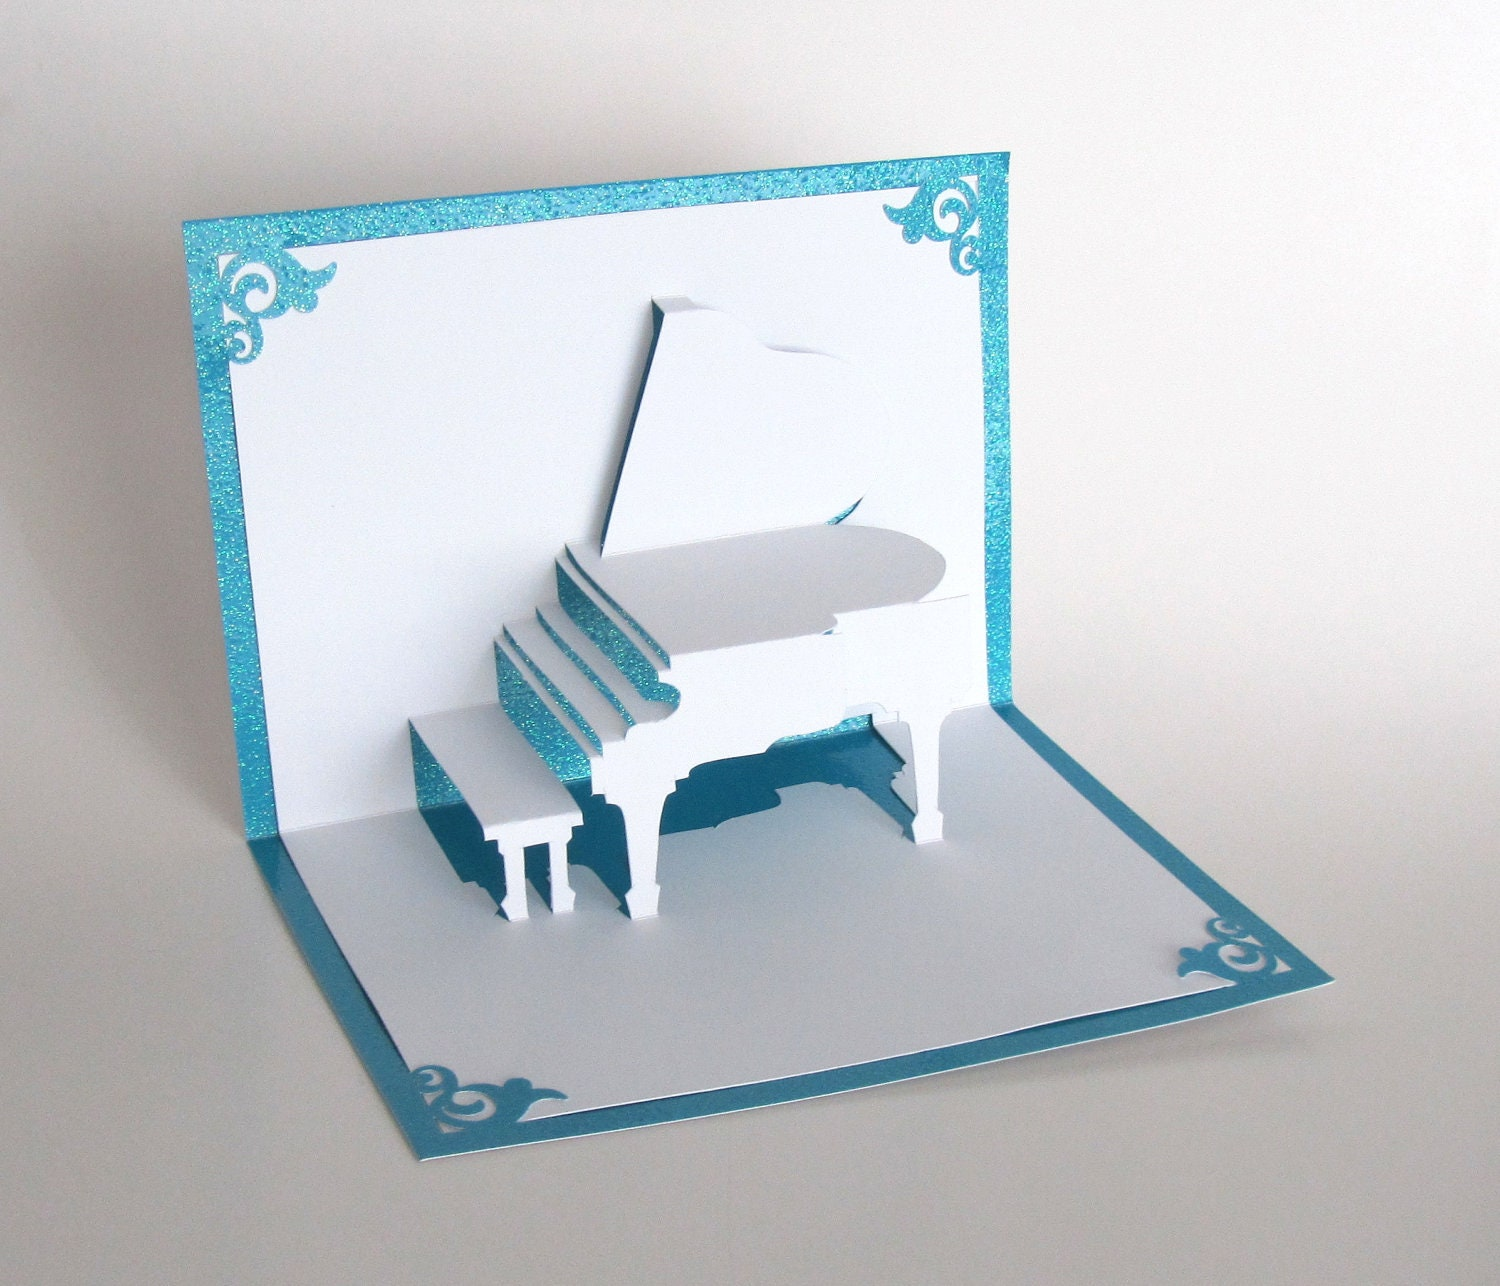 Grand piano 3d pop up greeting card handmade cut by hand zoom m4hsunfo